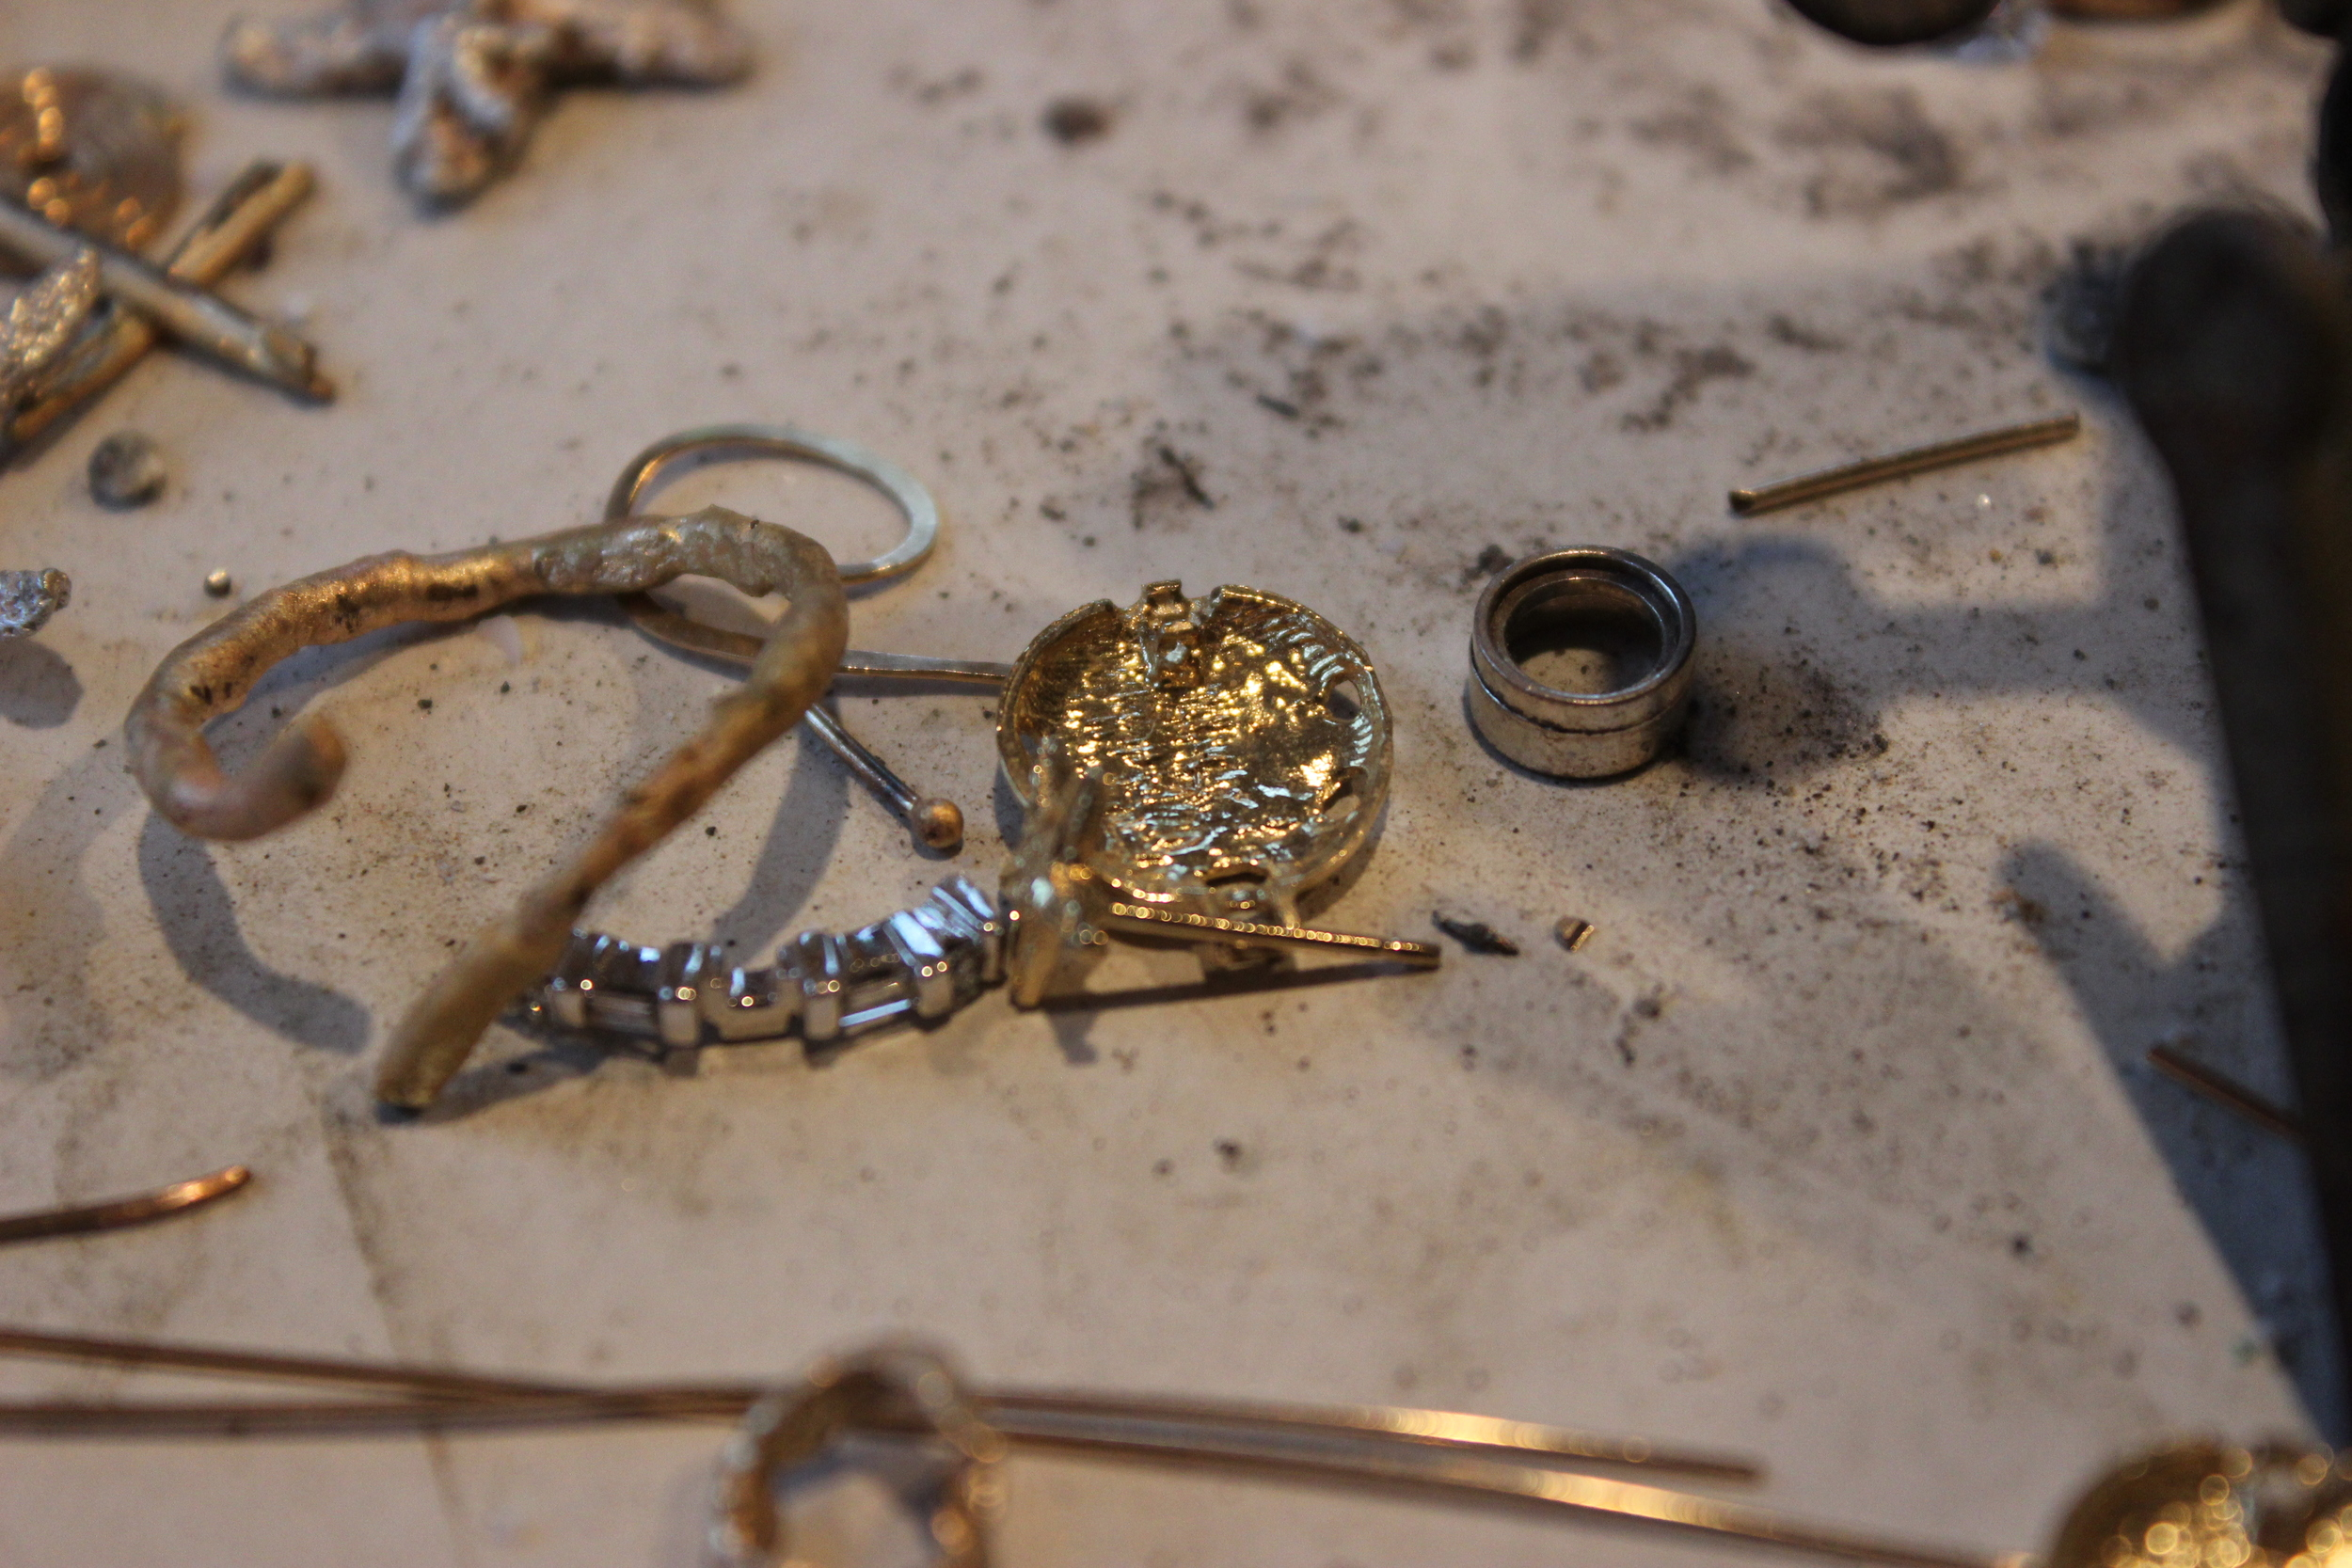 a close up view of the usual mess which is my workbench